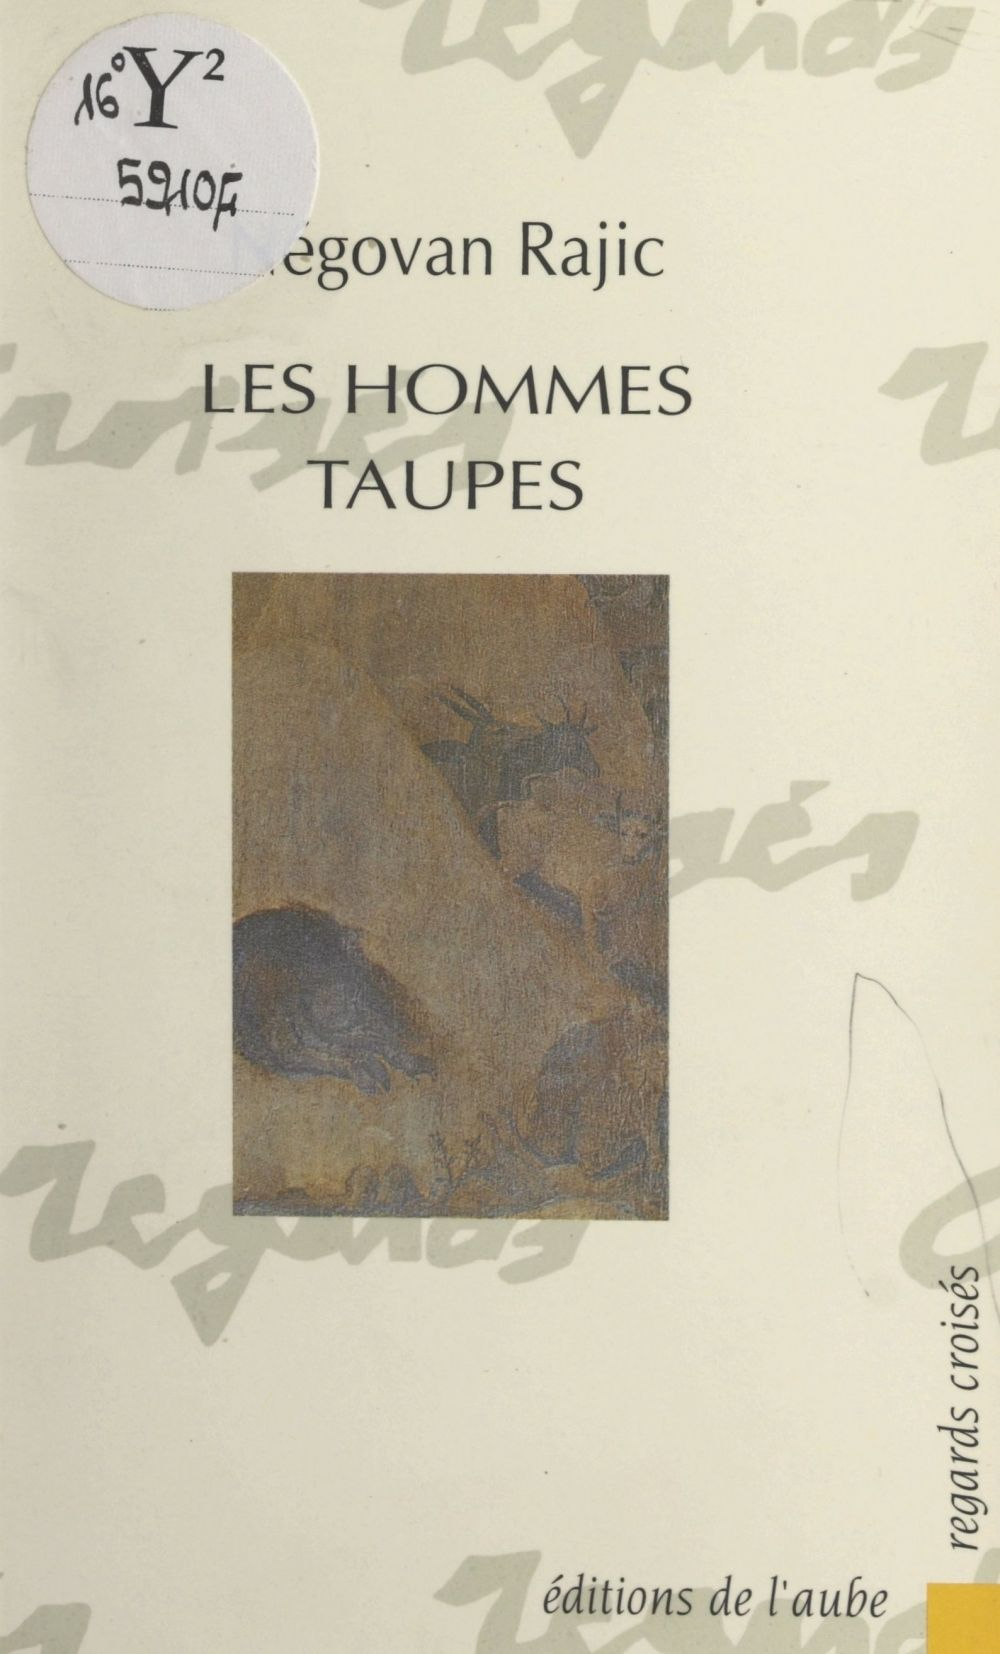 Les hommes-taupes